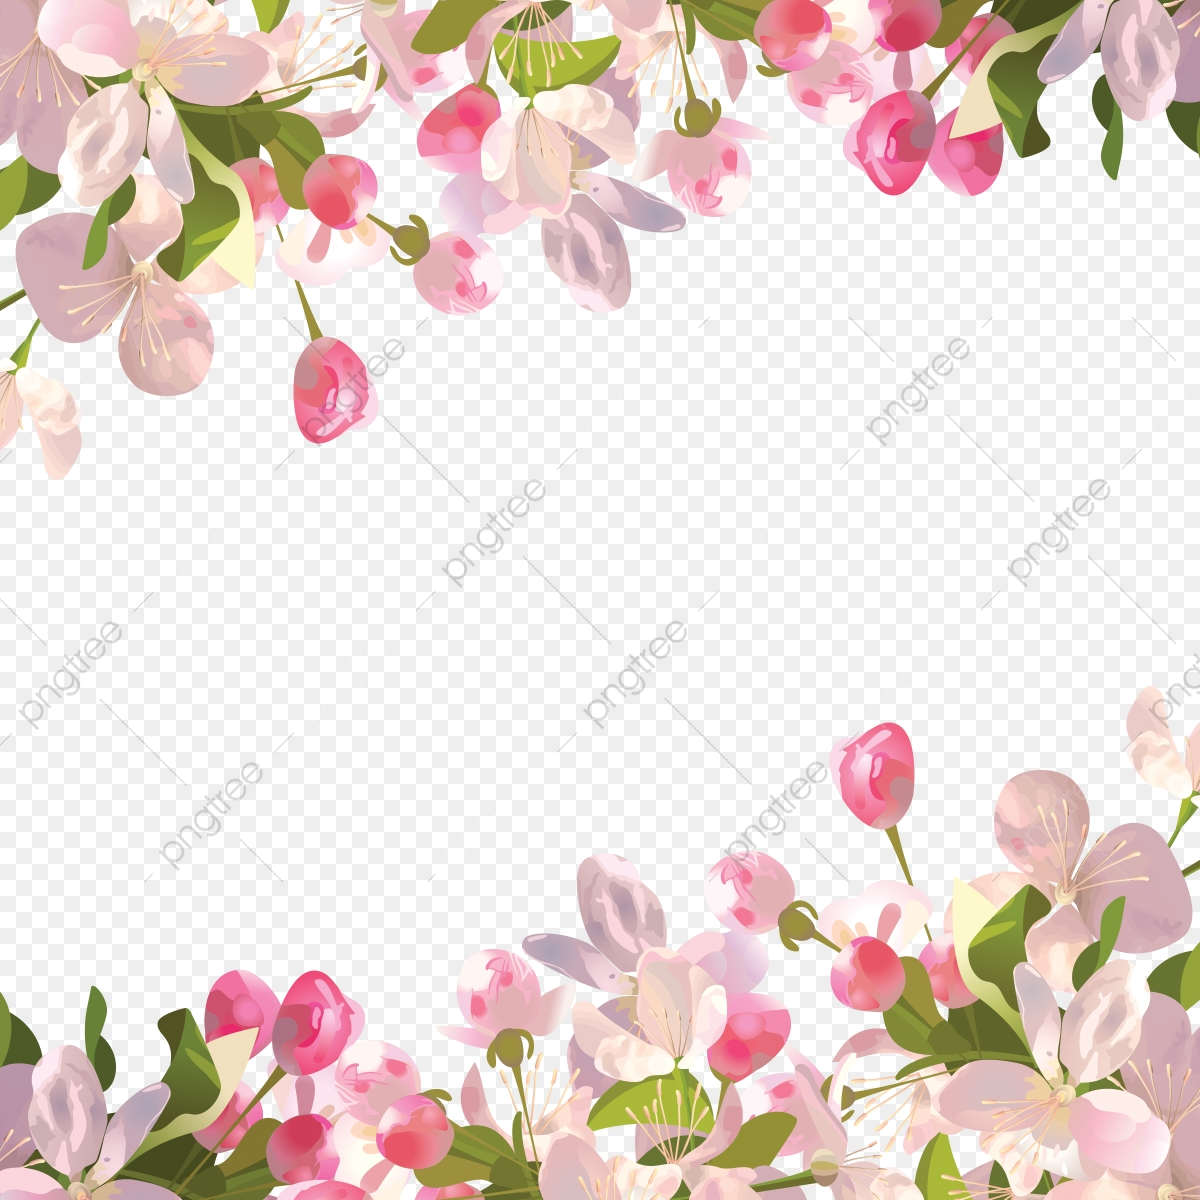 Flower Background Png Vector Psd And Clipart With Transparent Background For Free Download Pngtree